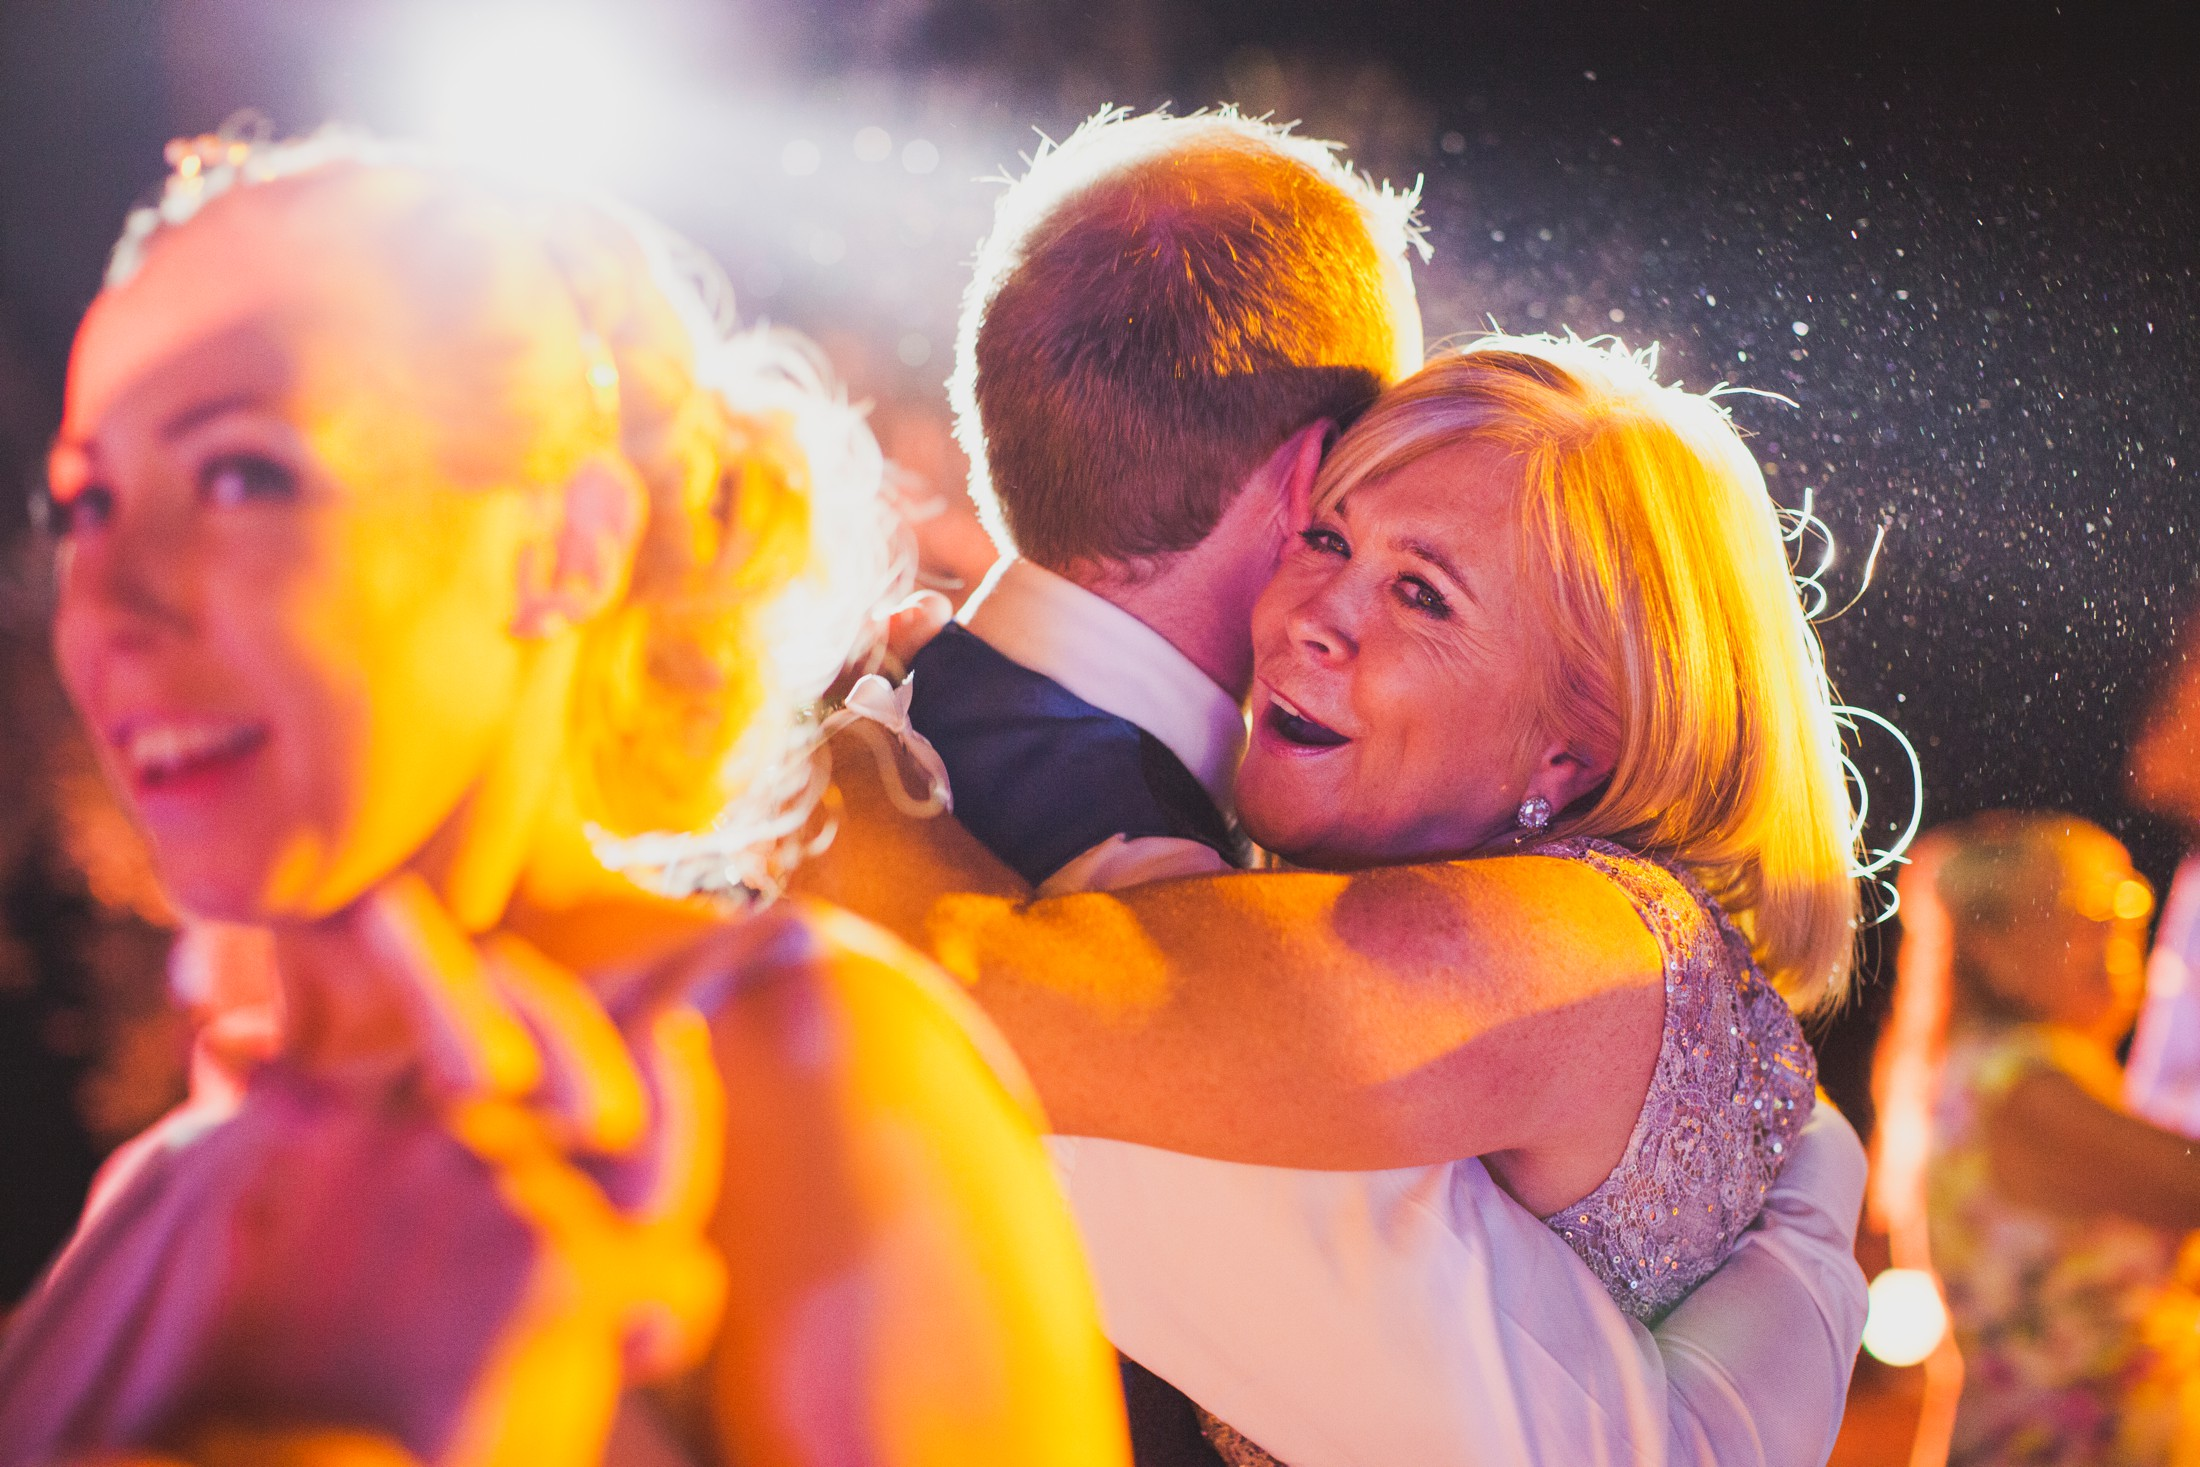 the groom's mother hold his son during the wedding dance party at villa cimbrone ravello